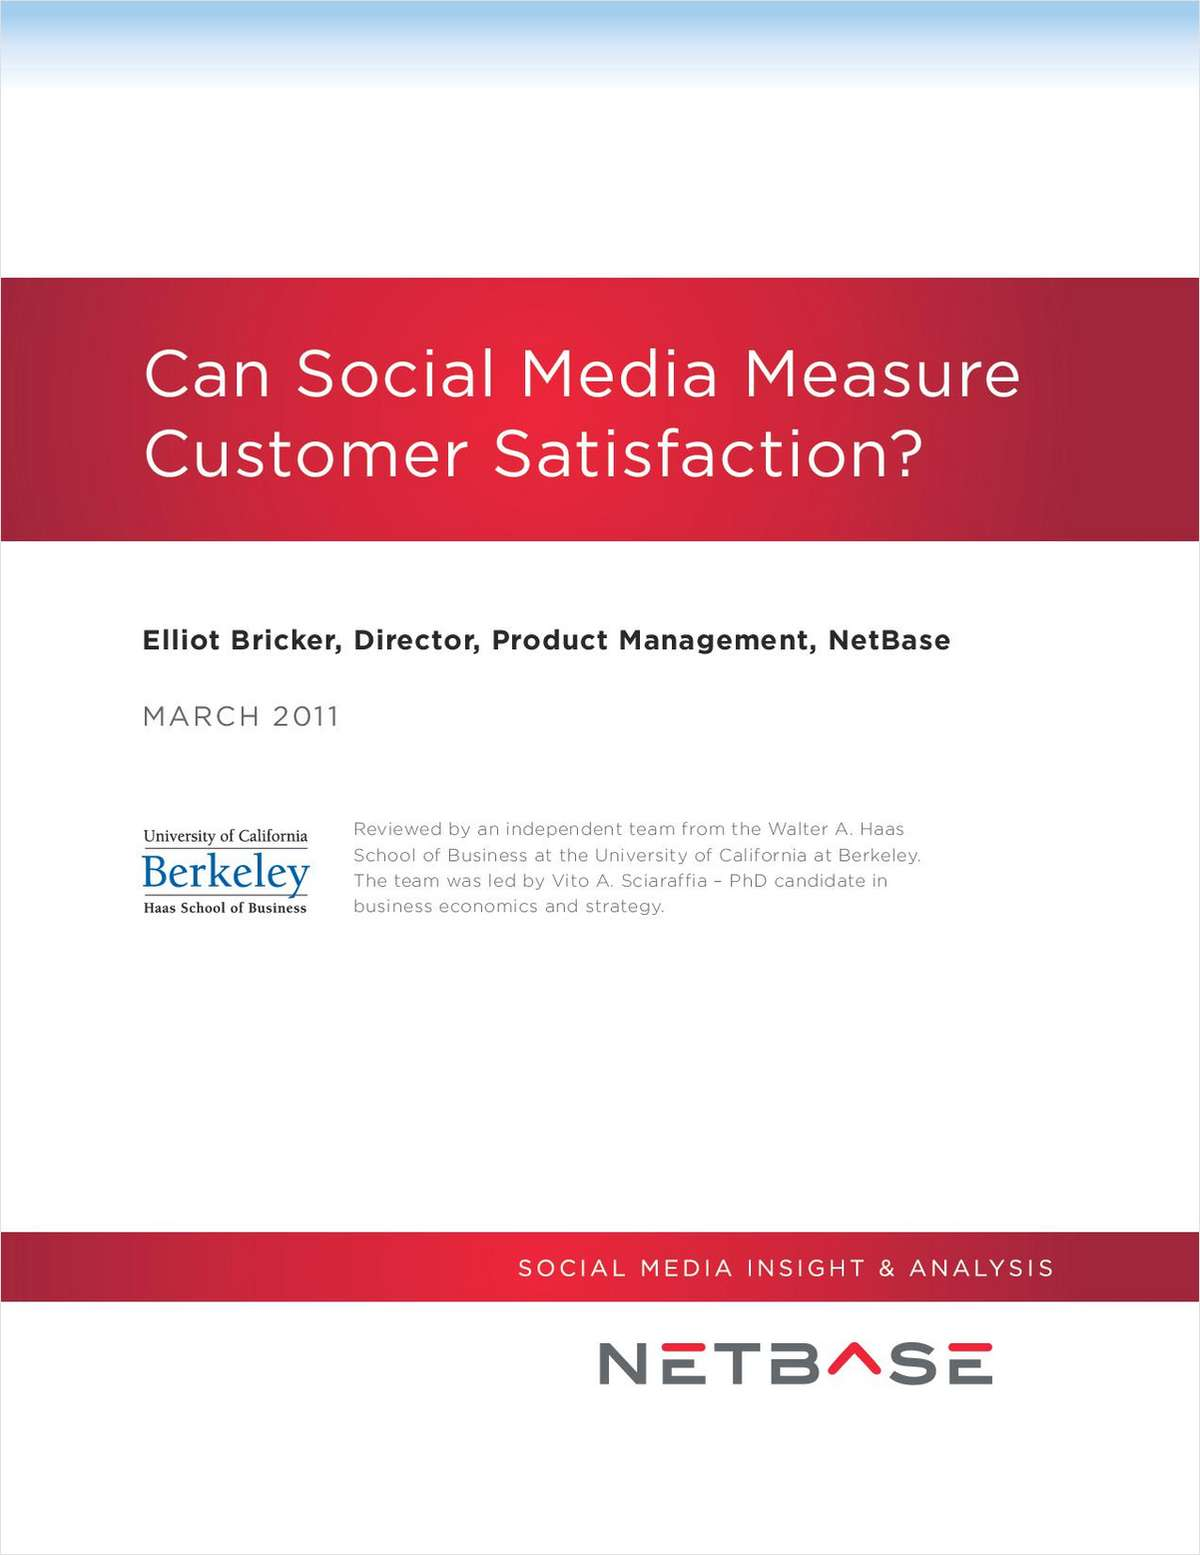 Can Social Media Measure Customer Satisfaction?